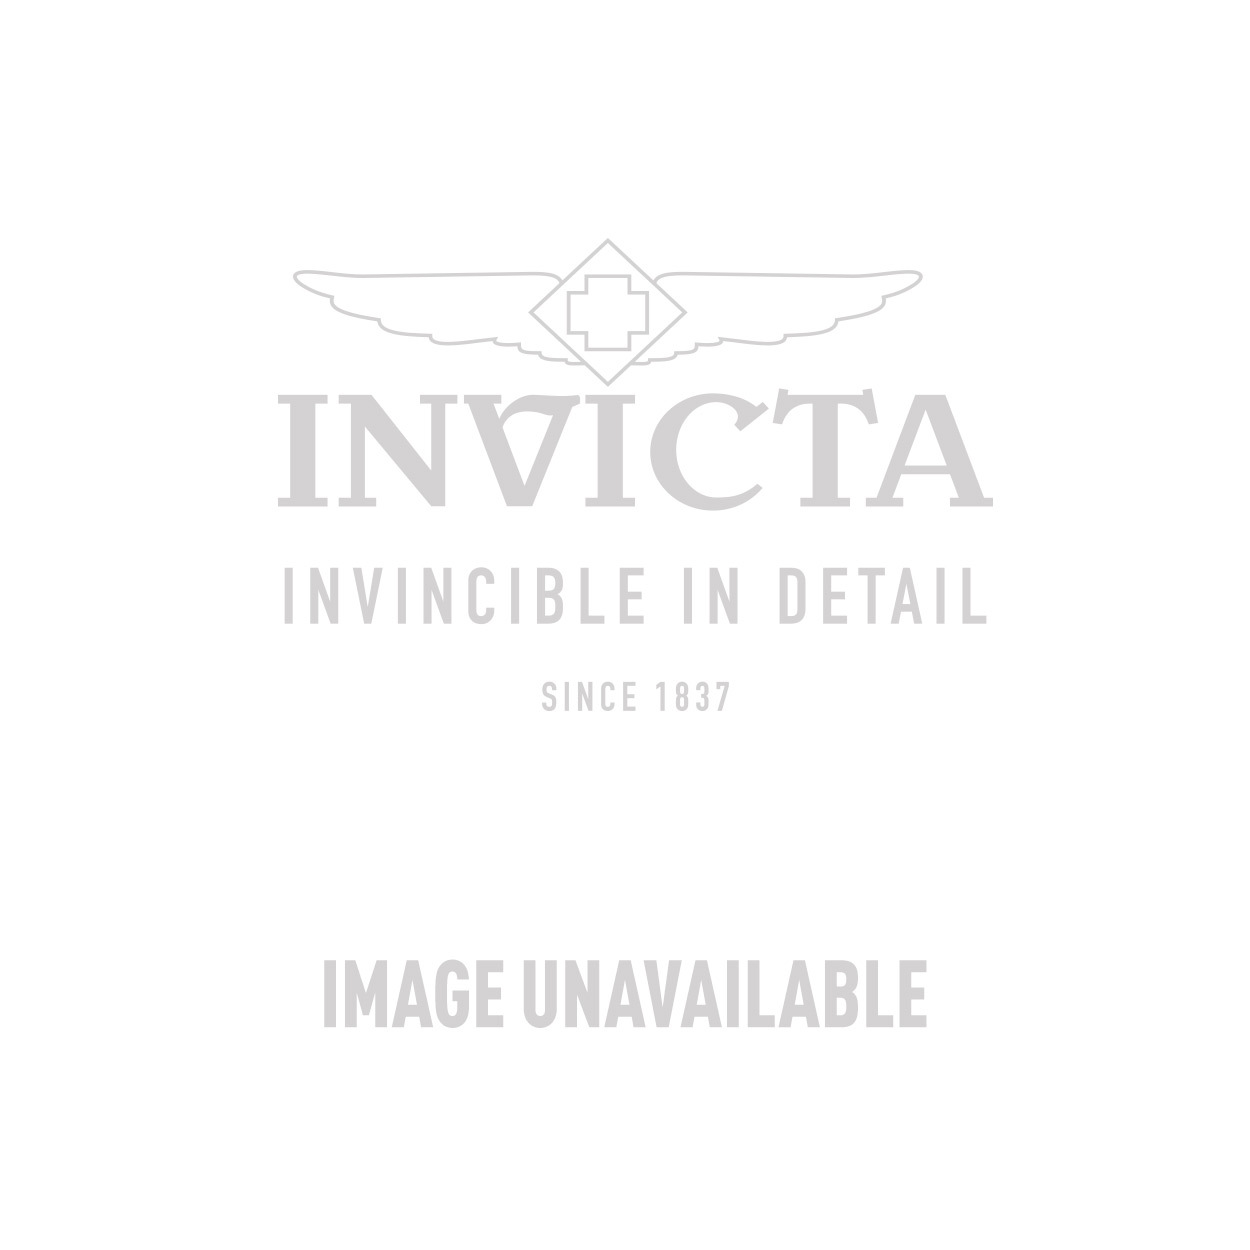 Invicta Specialty Quartz Watch - Gold, Stainless Steel case with Blue tone Polyurethane band - Model 12847